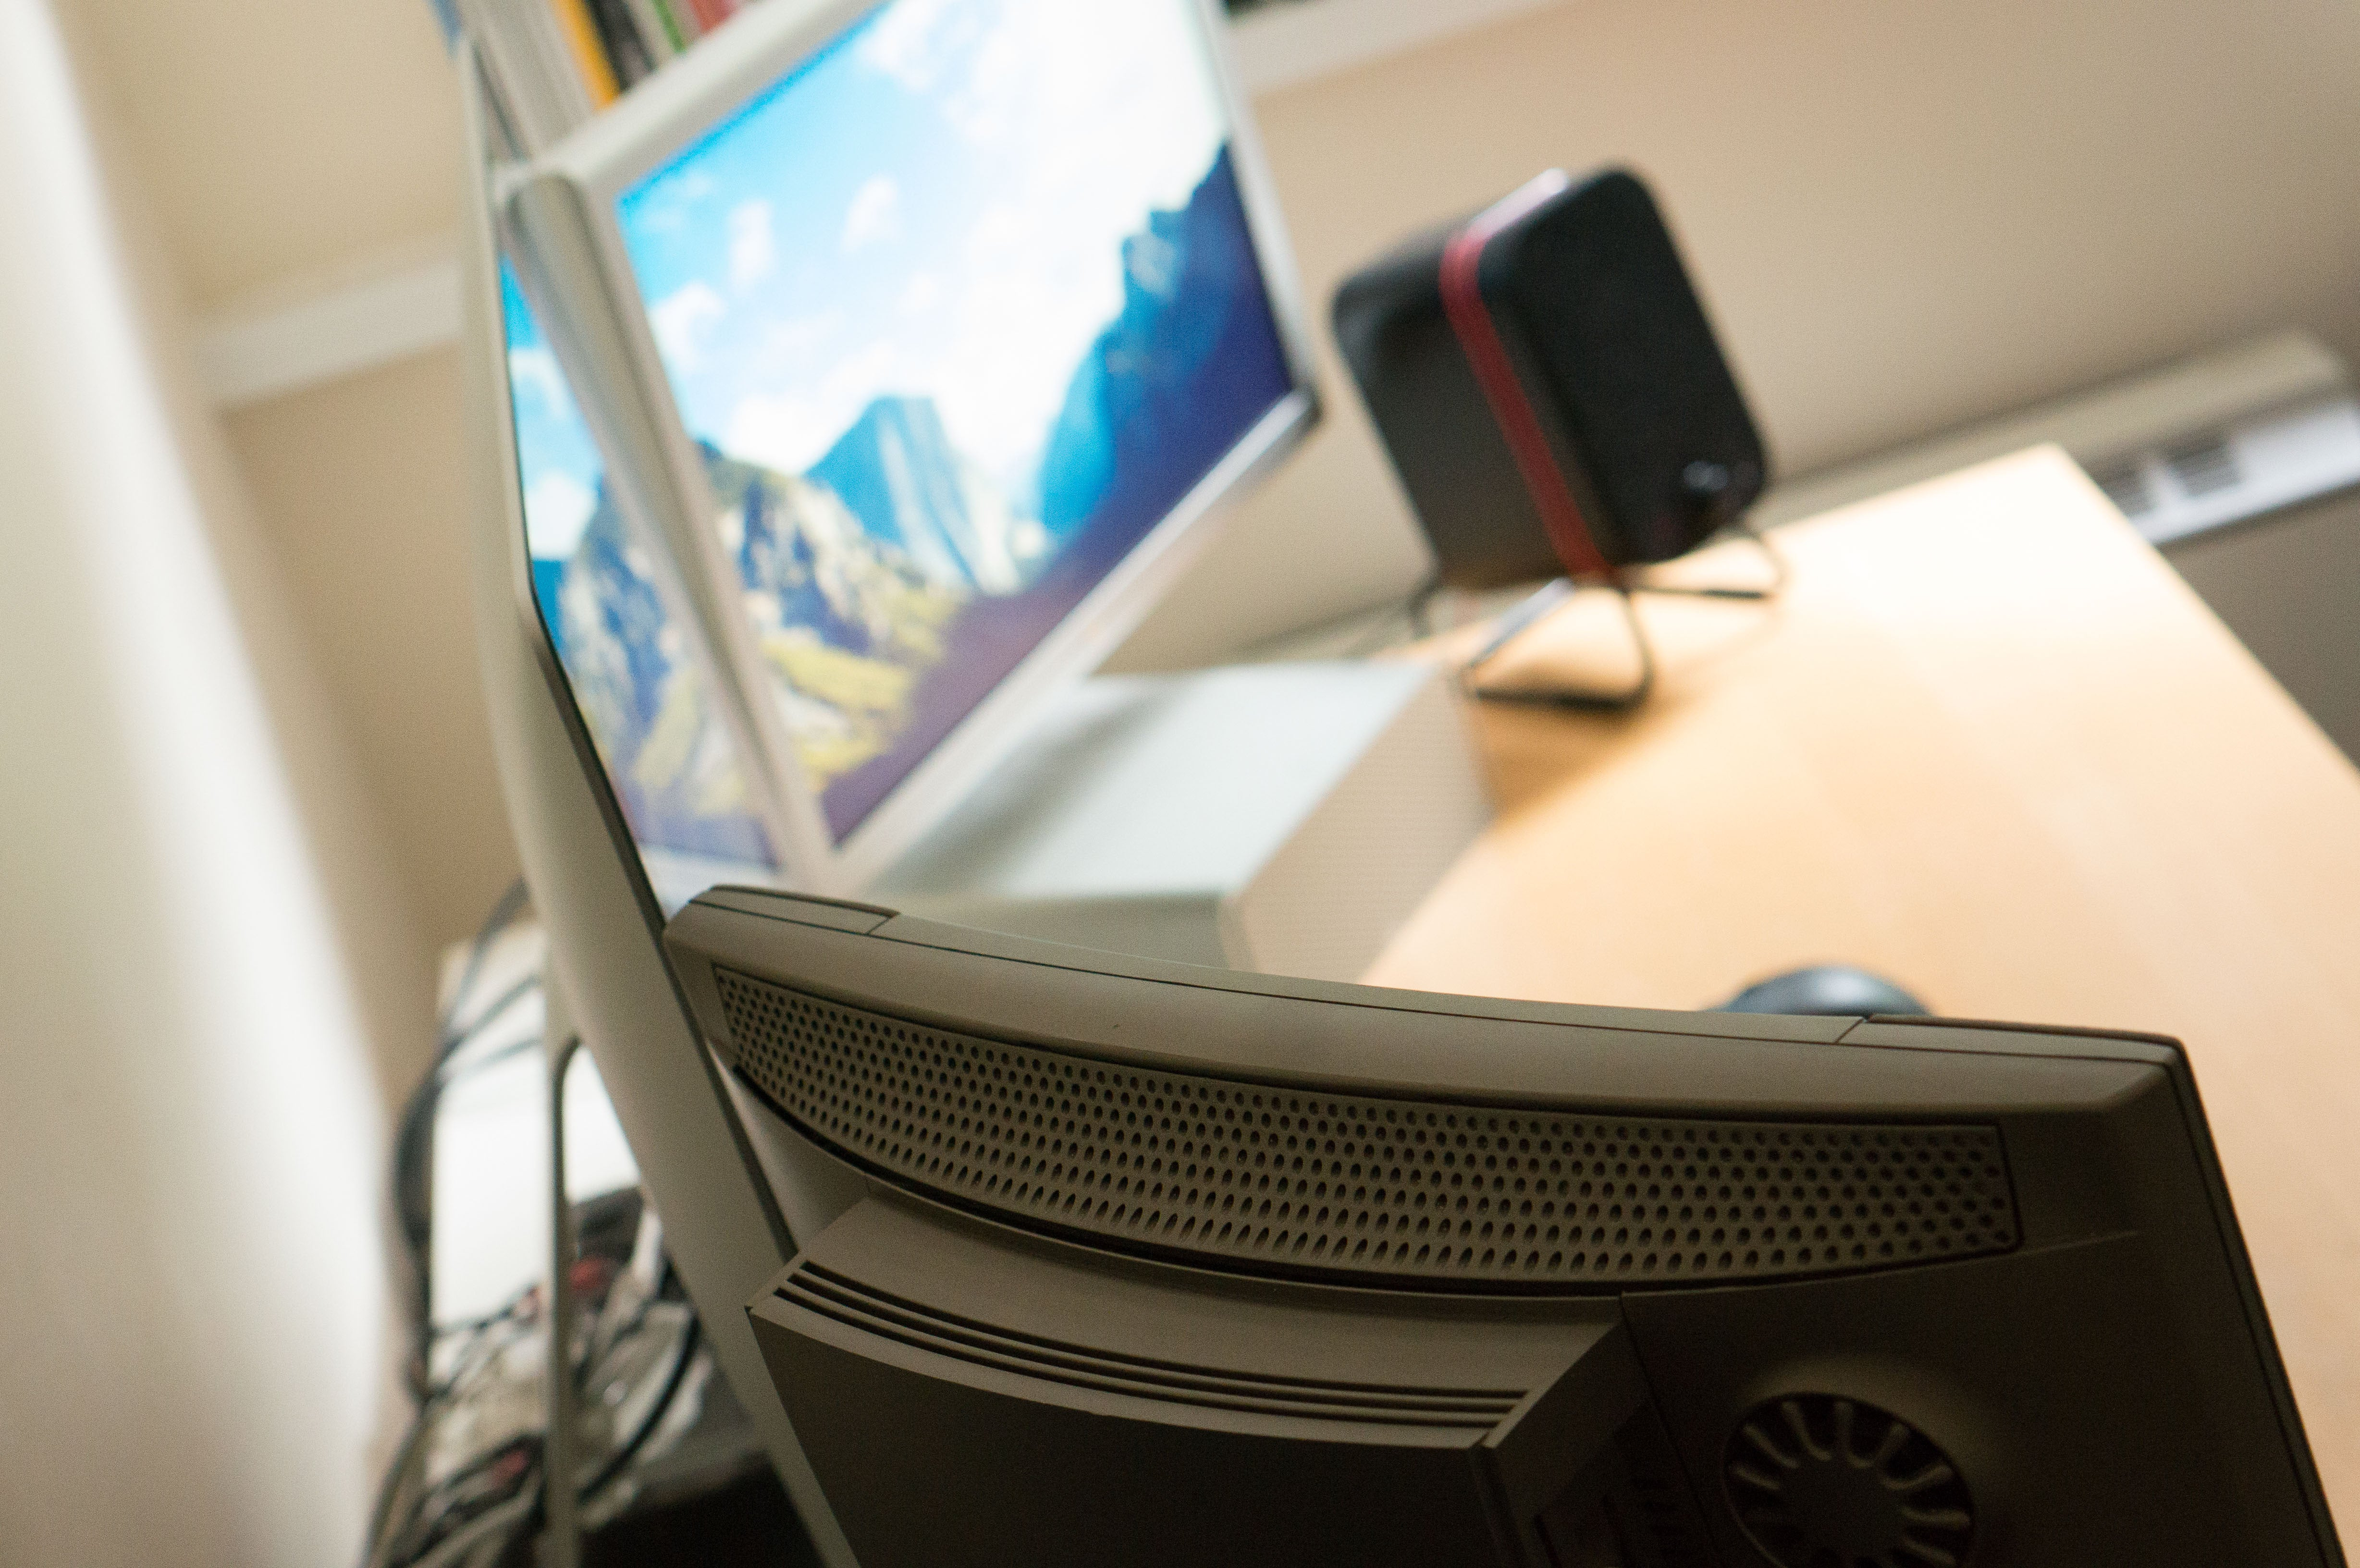 In essence, the TAM is an iMac: An all-in-one Mac with the components all  held in a vertical case behind the screen. It might not seem slim next to  the ...